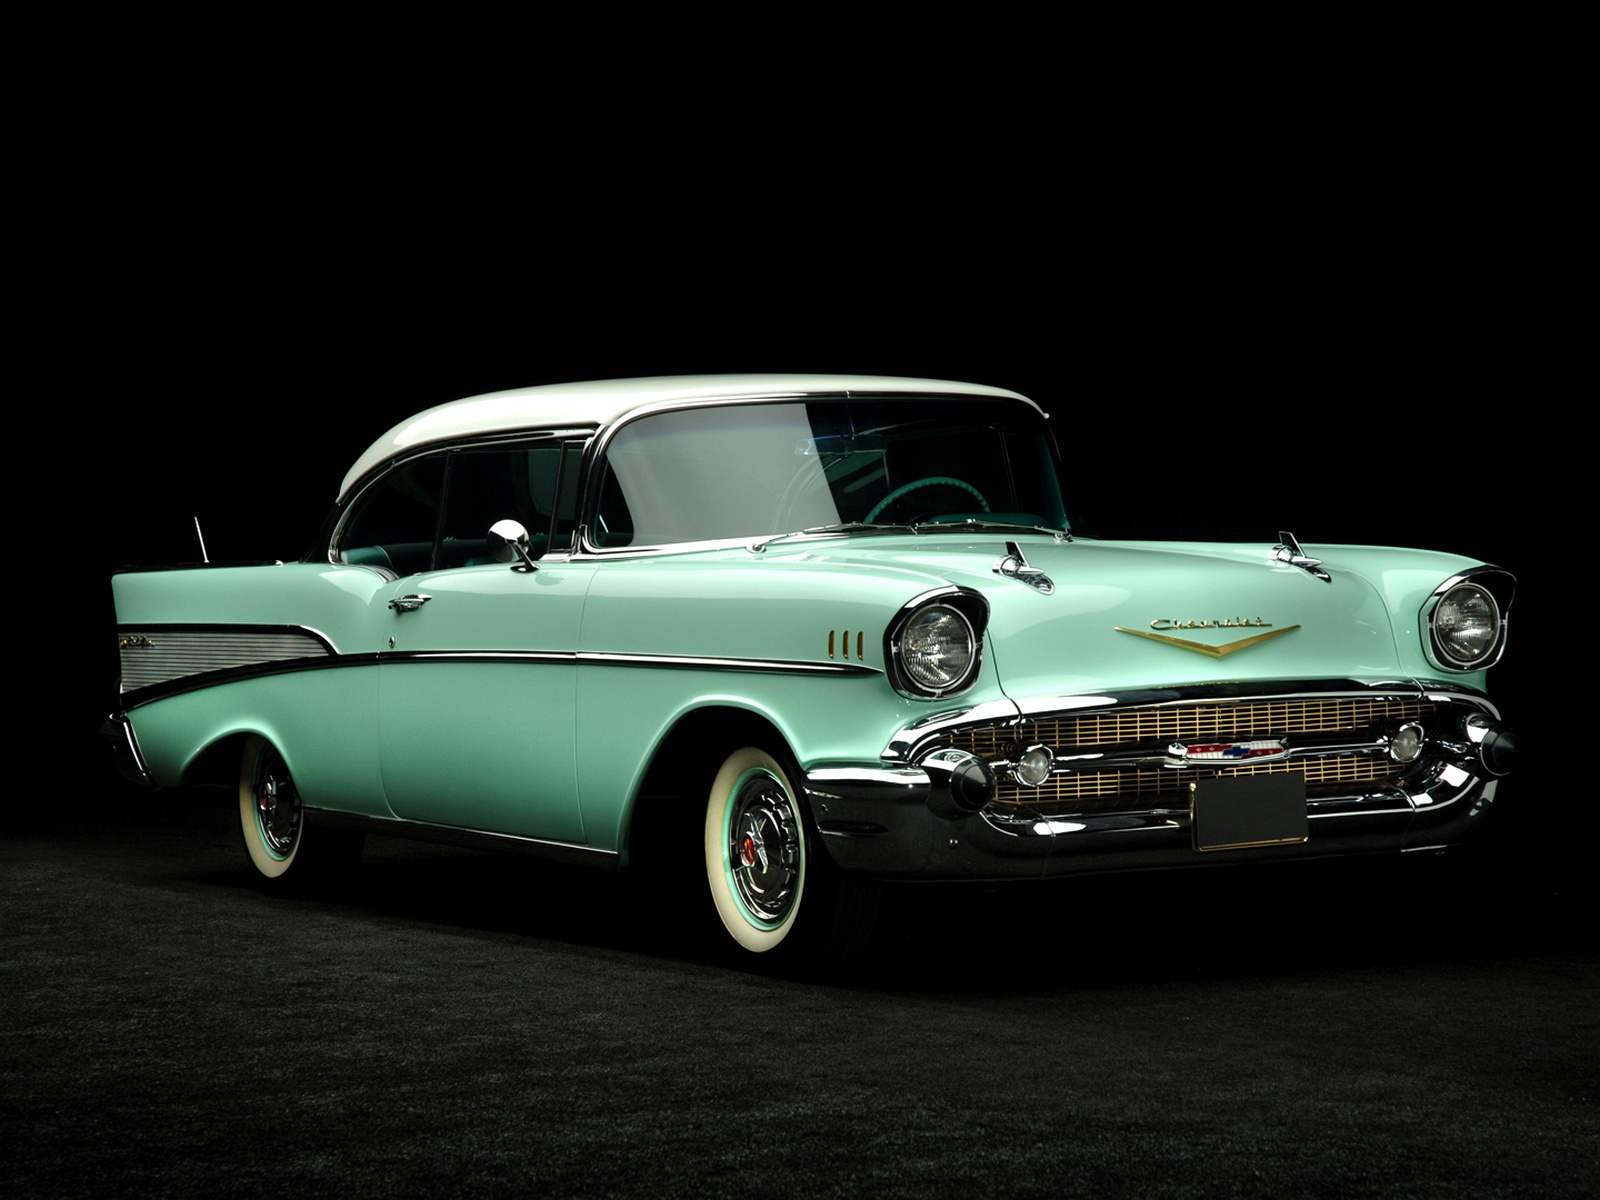 Chevrolet Wallpapers Chevrolet Bel Air Sport Coupe 1957 Walpapers 1600x1200